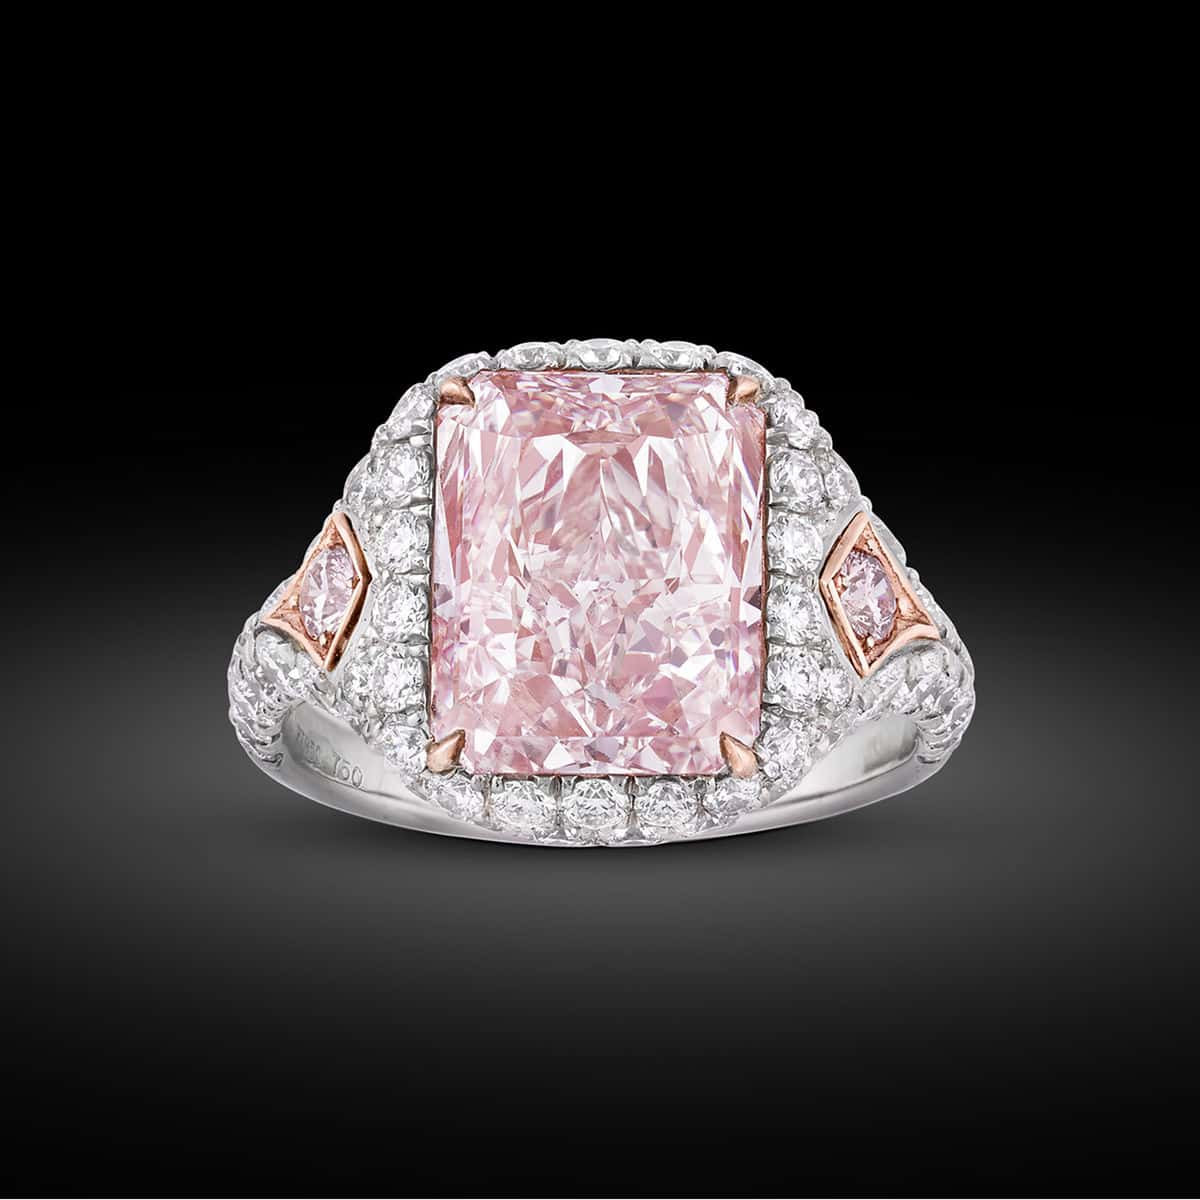 Would You Like A 5 Million Fancy Pink Diamond Ring